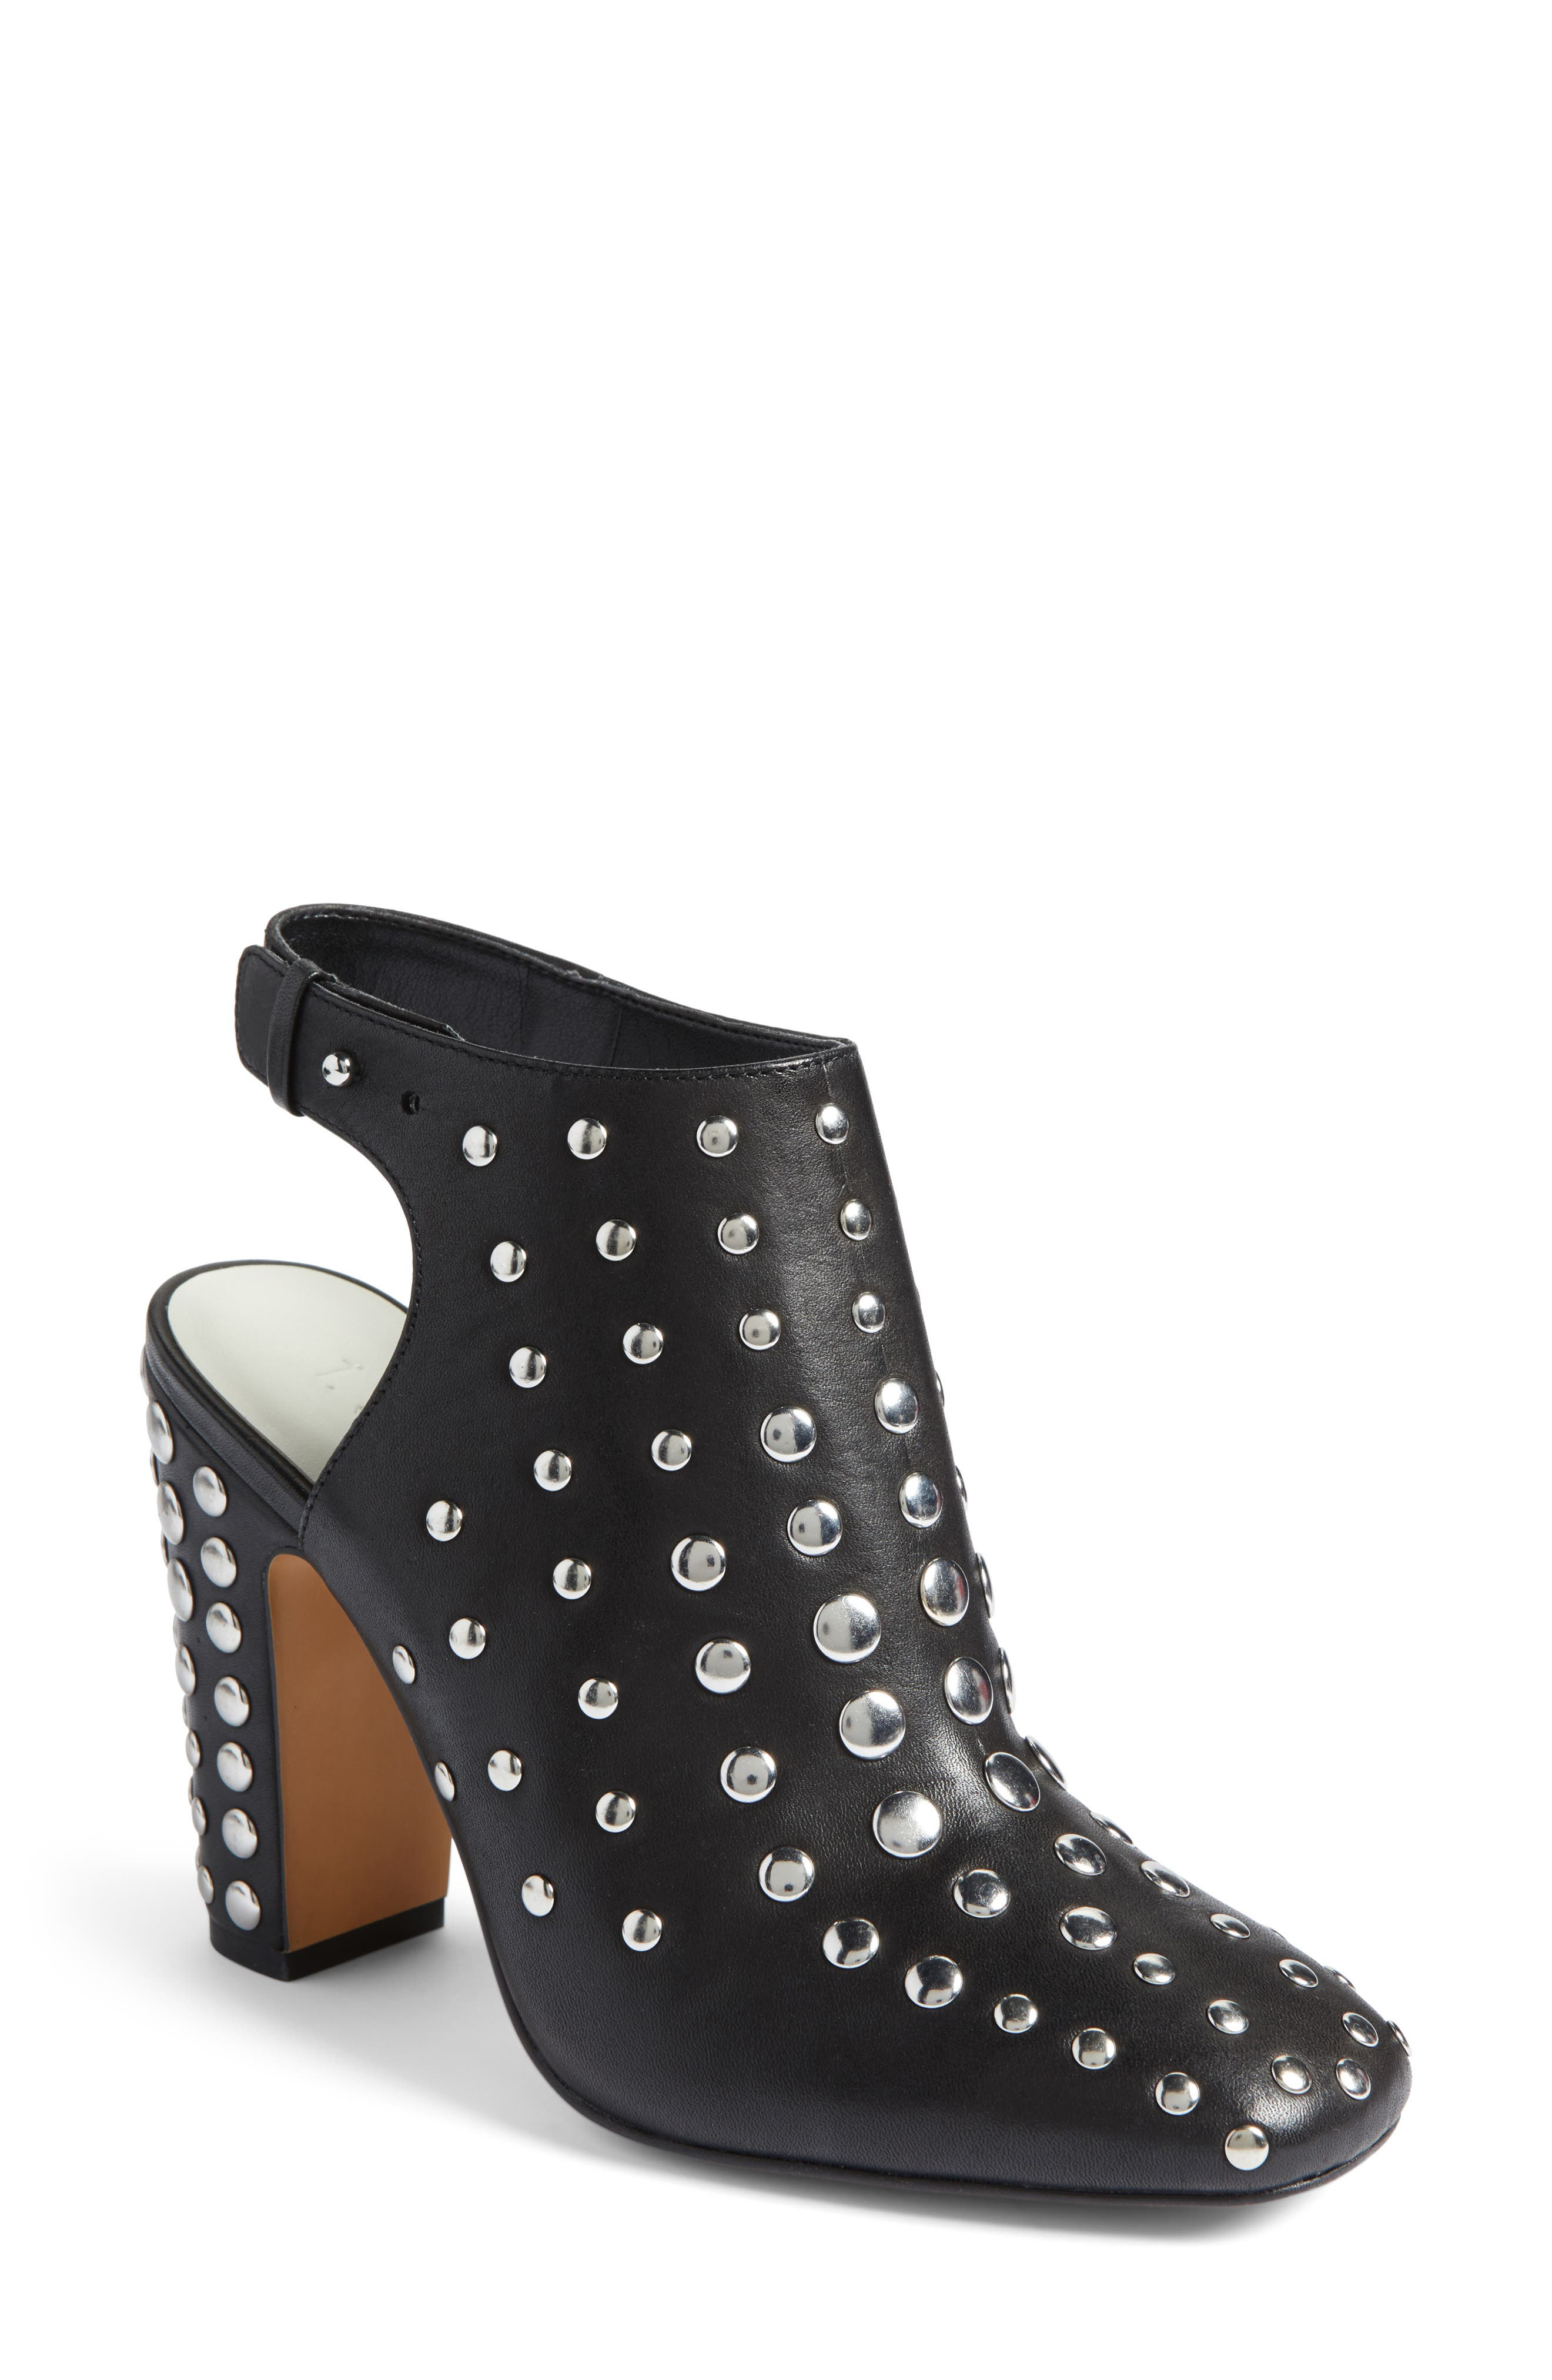 Main Image - 1.STATE Rida Studded Bootie (Women)